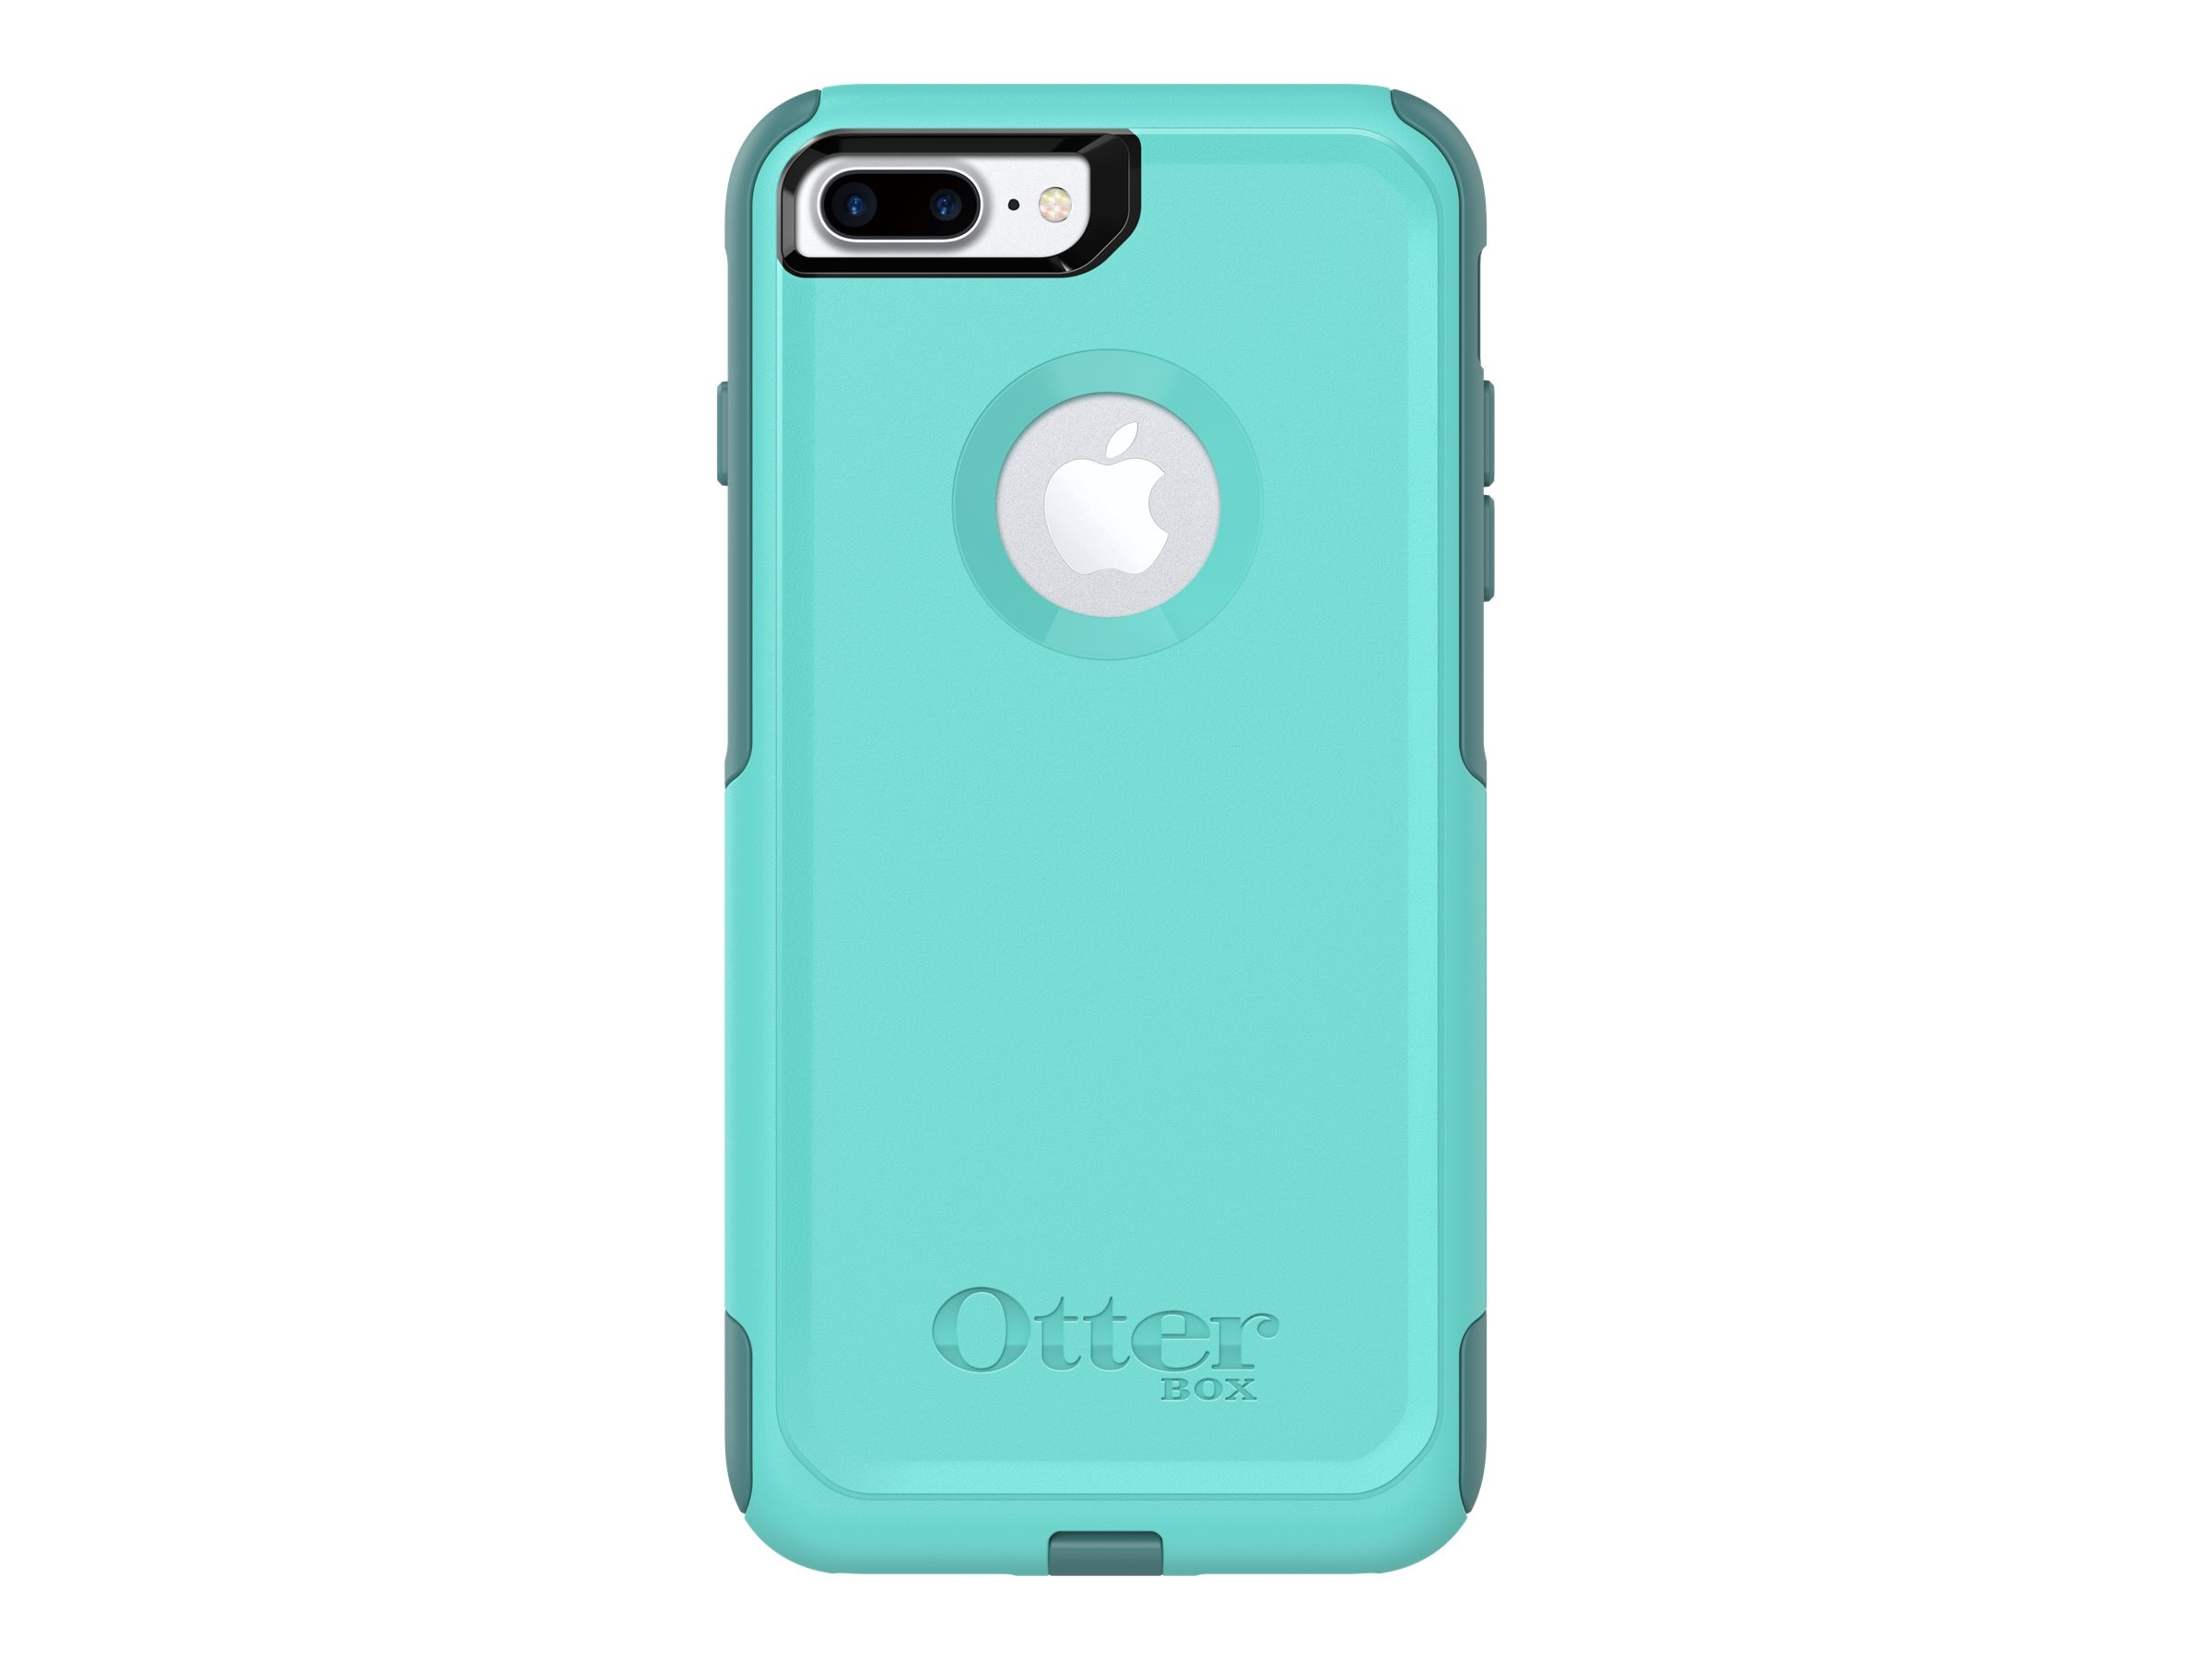 OtterBox Commuter Case for iPhone 7 Plus, Aqua Mint, 77-53914